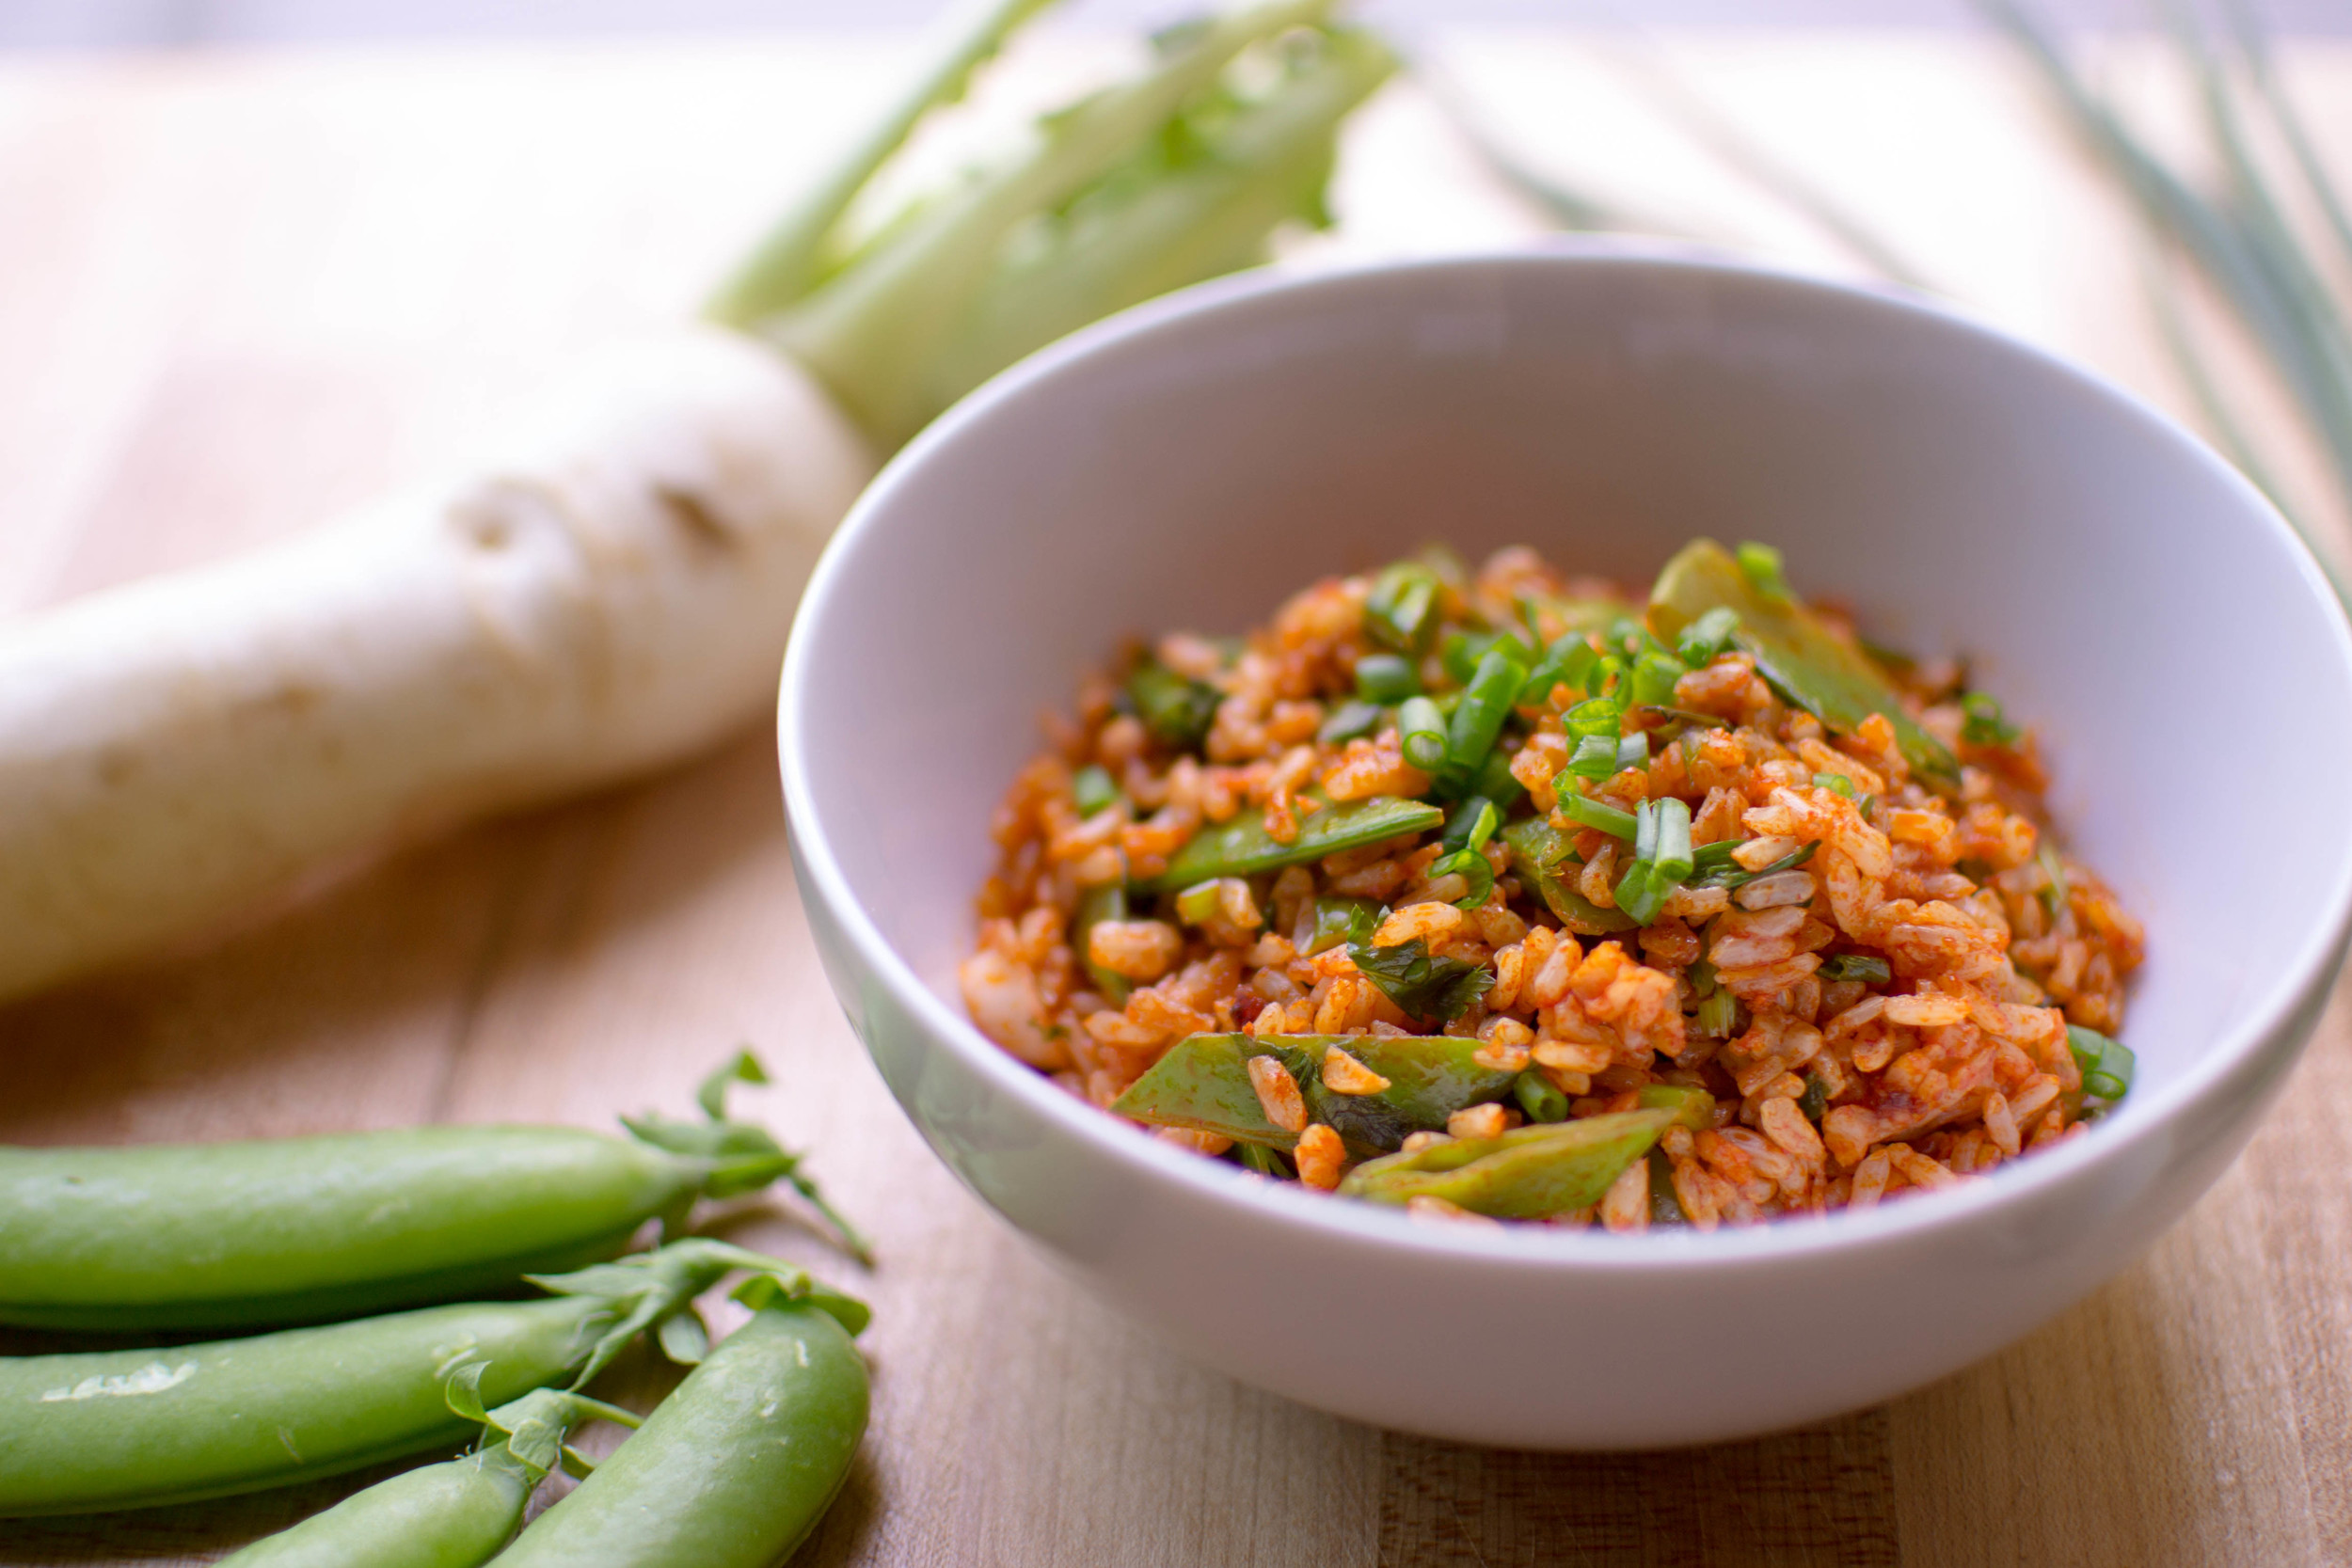 Snap Pea Fried Rice with Kimchee Seasoning Paste